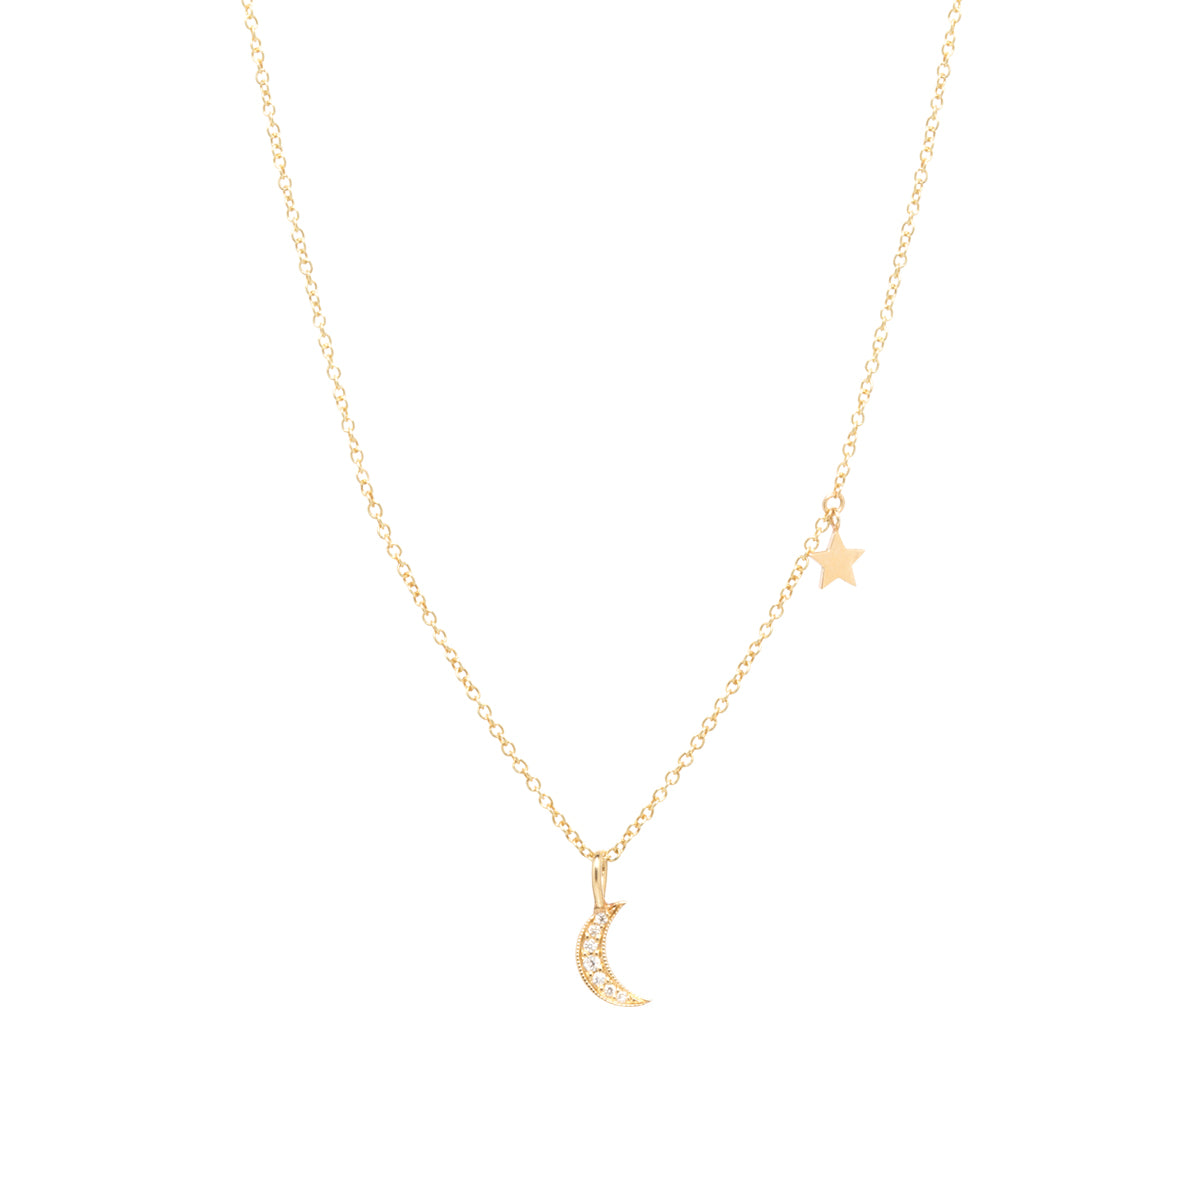 14k gold pave midi bitty crescent moon charm necklace